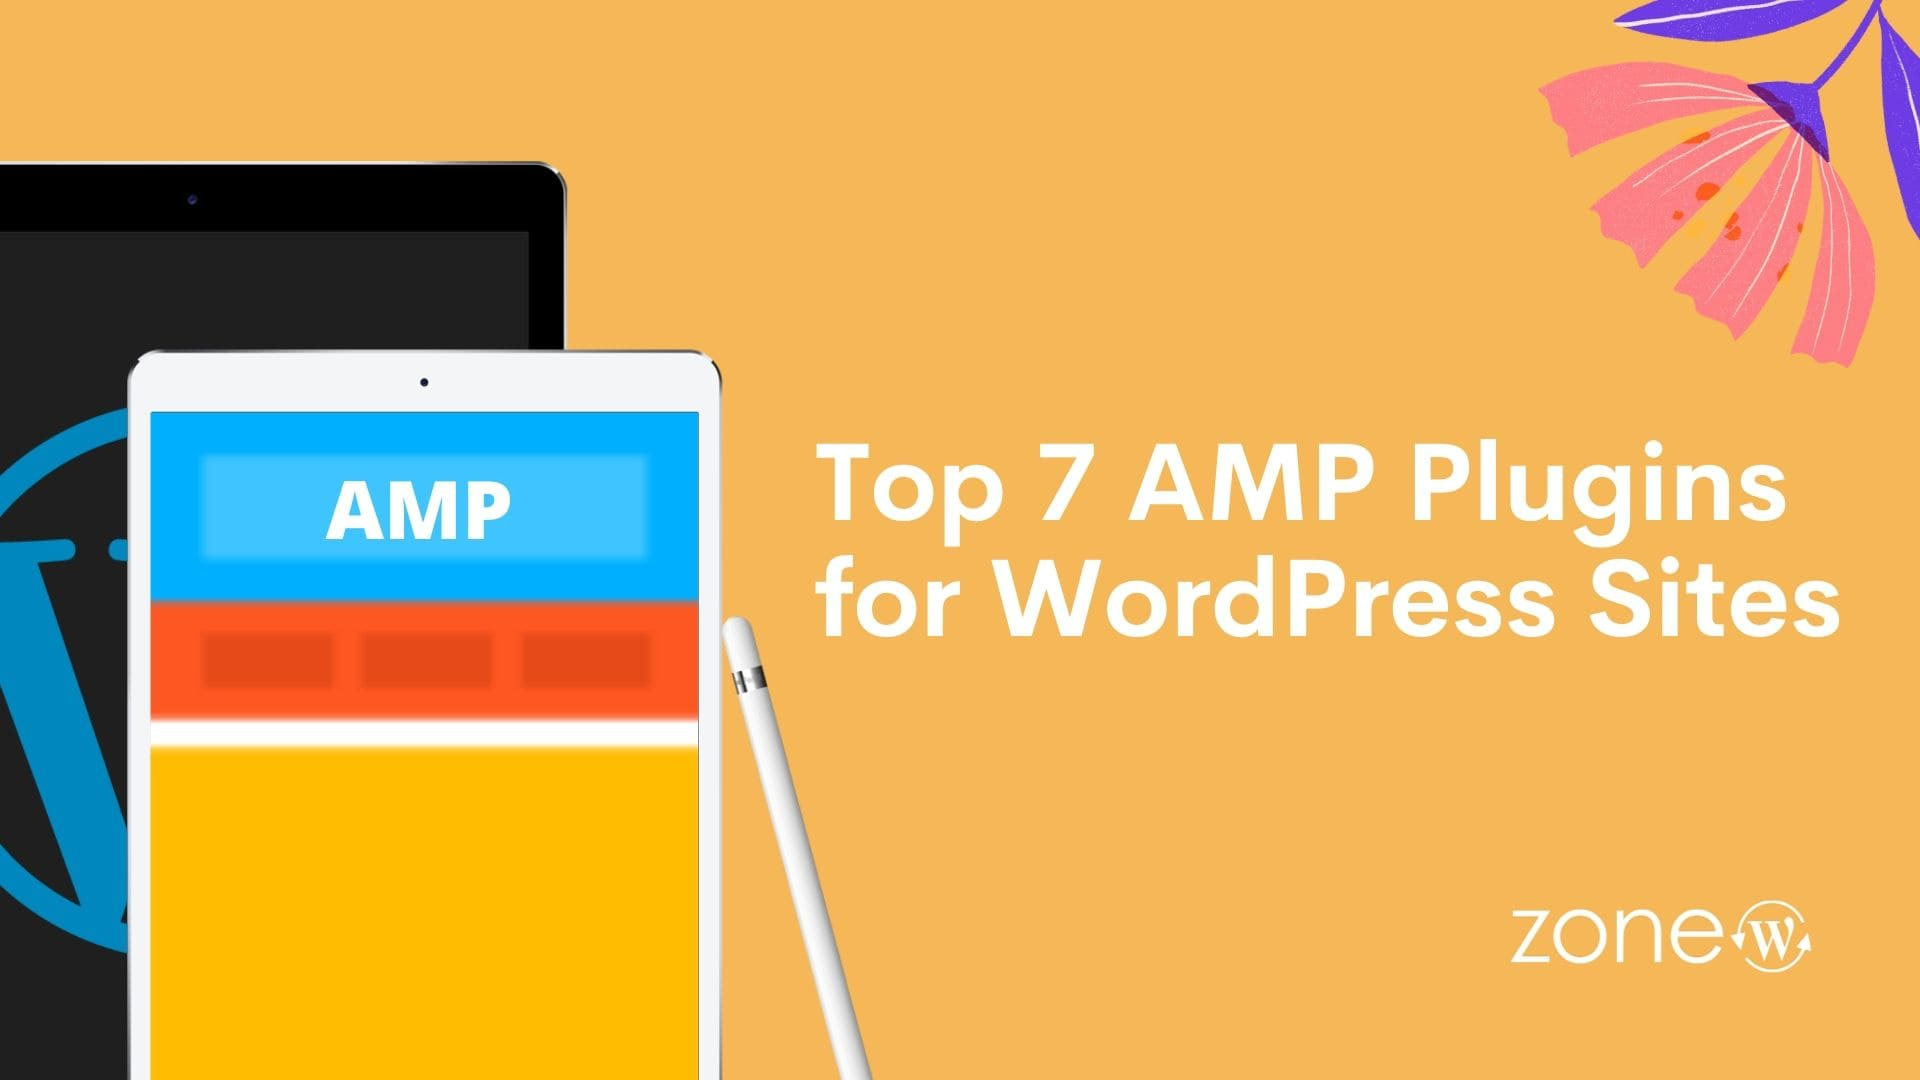 Top 7 AMP Plugins for WordPress Sites